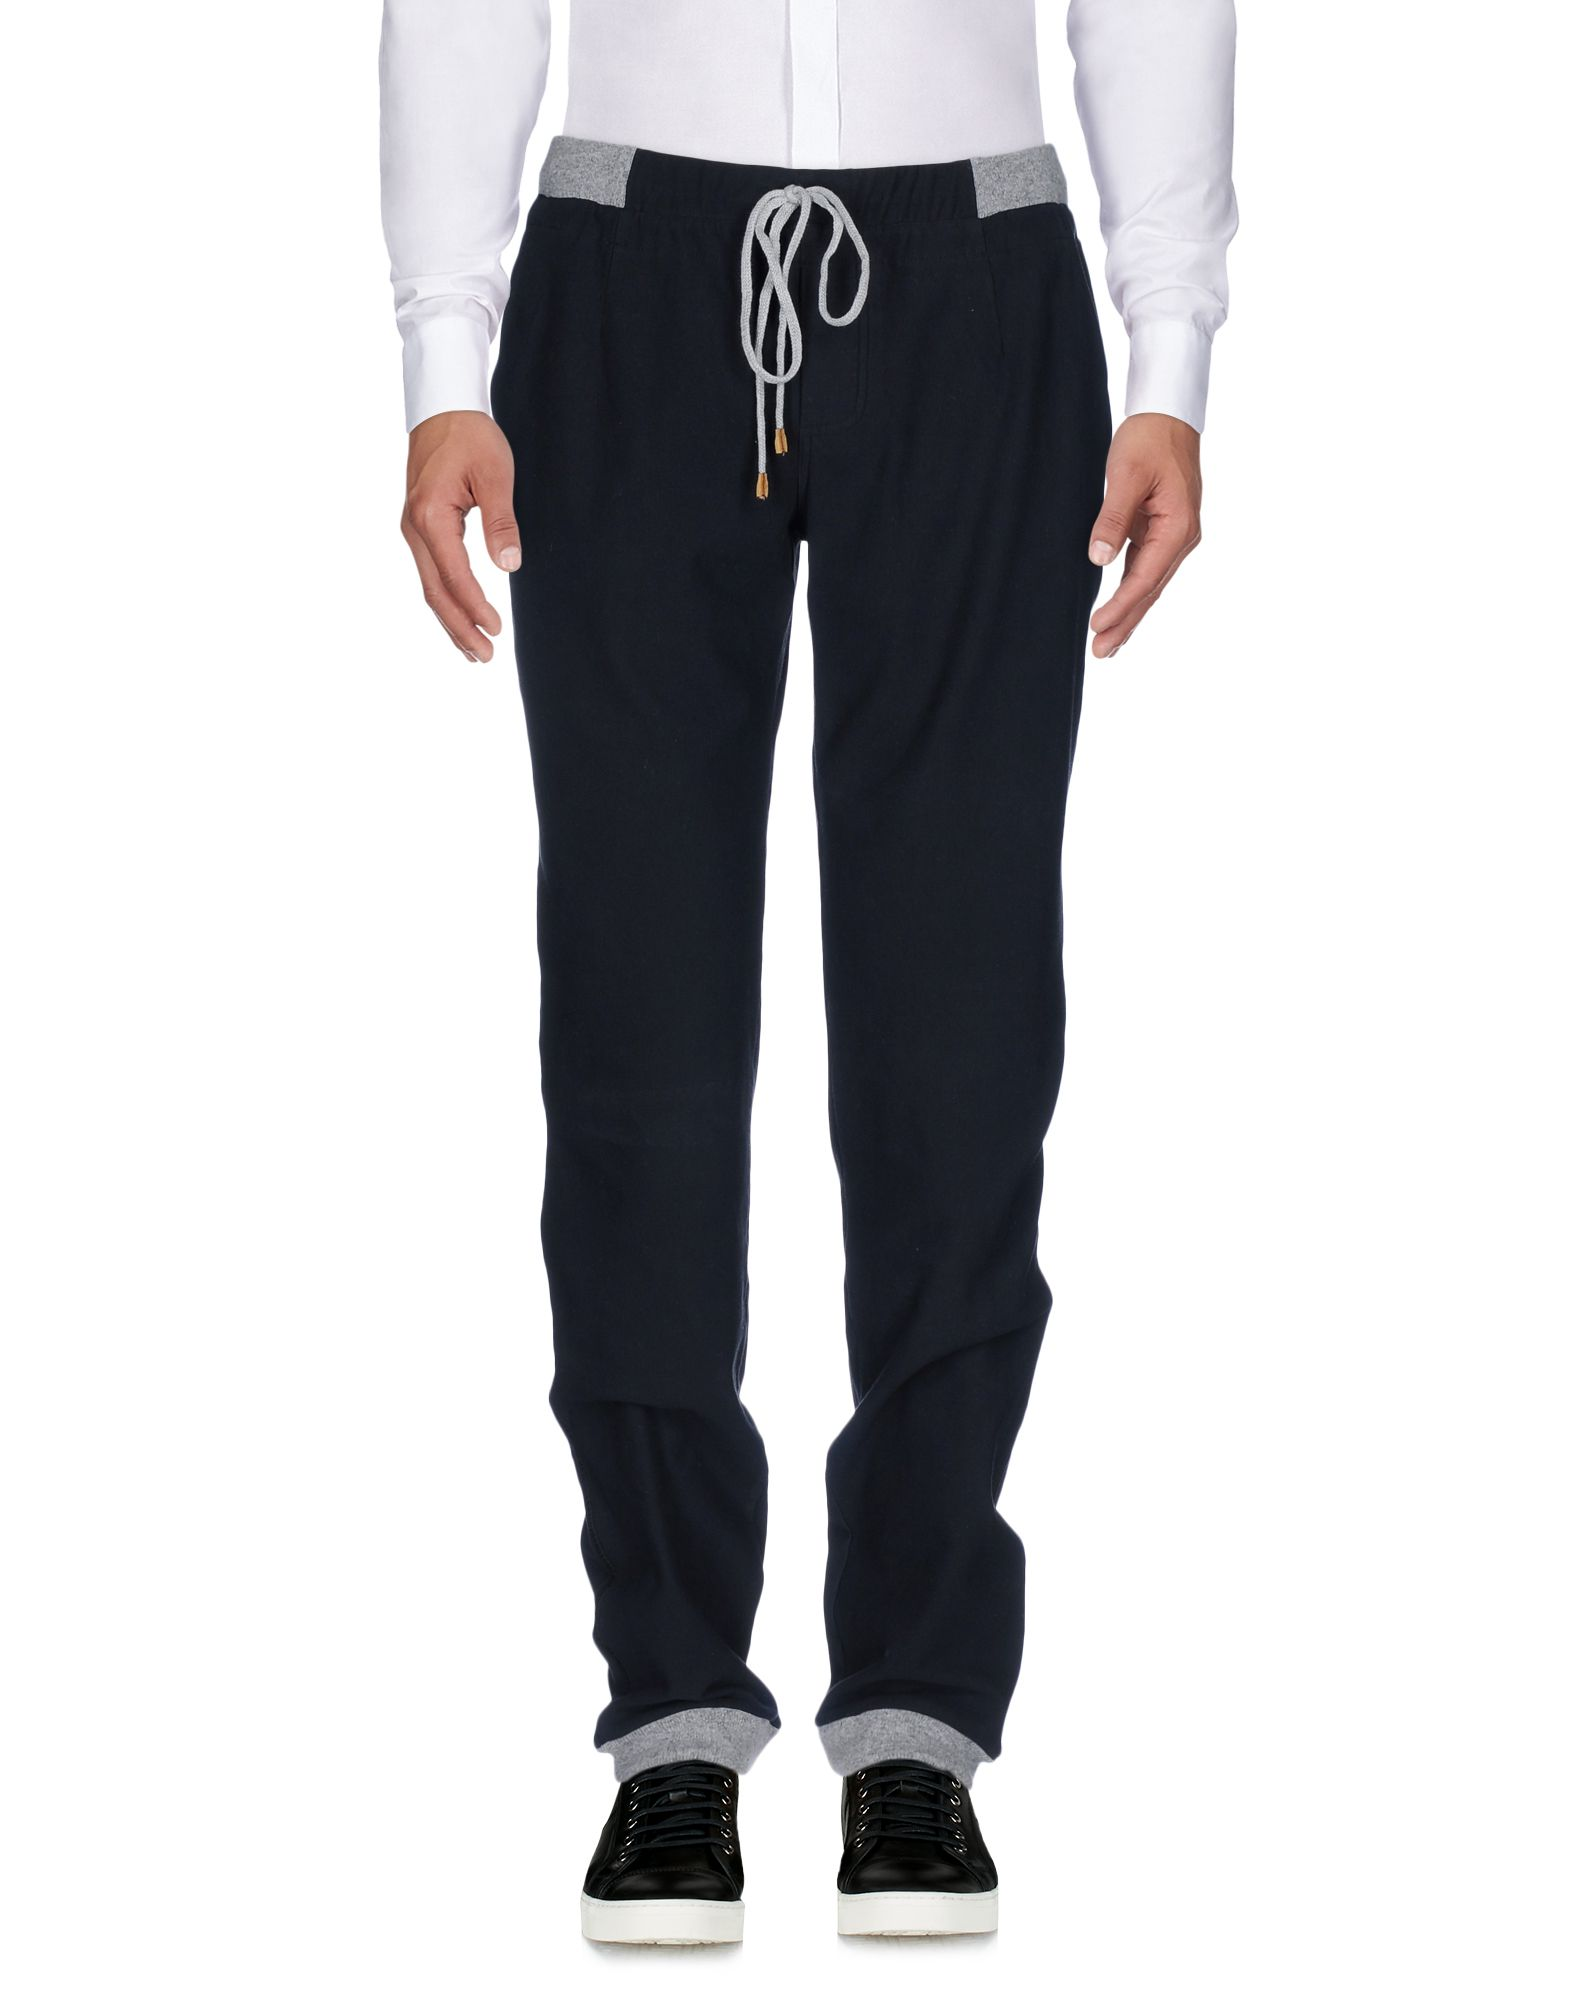 CAPOBIANCO Casual Pants in Black